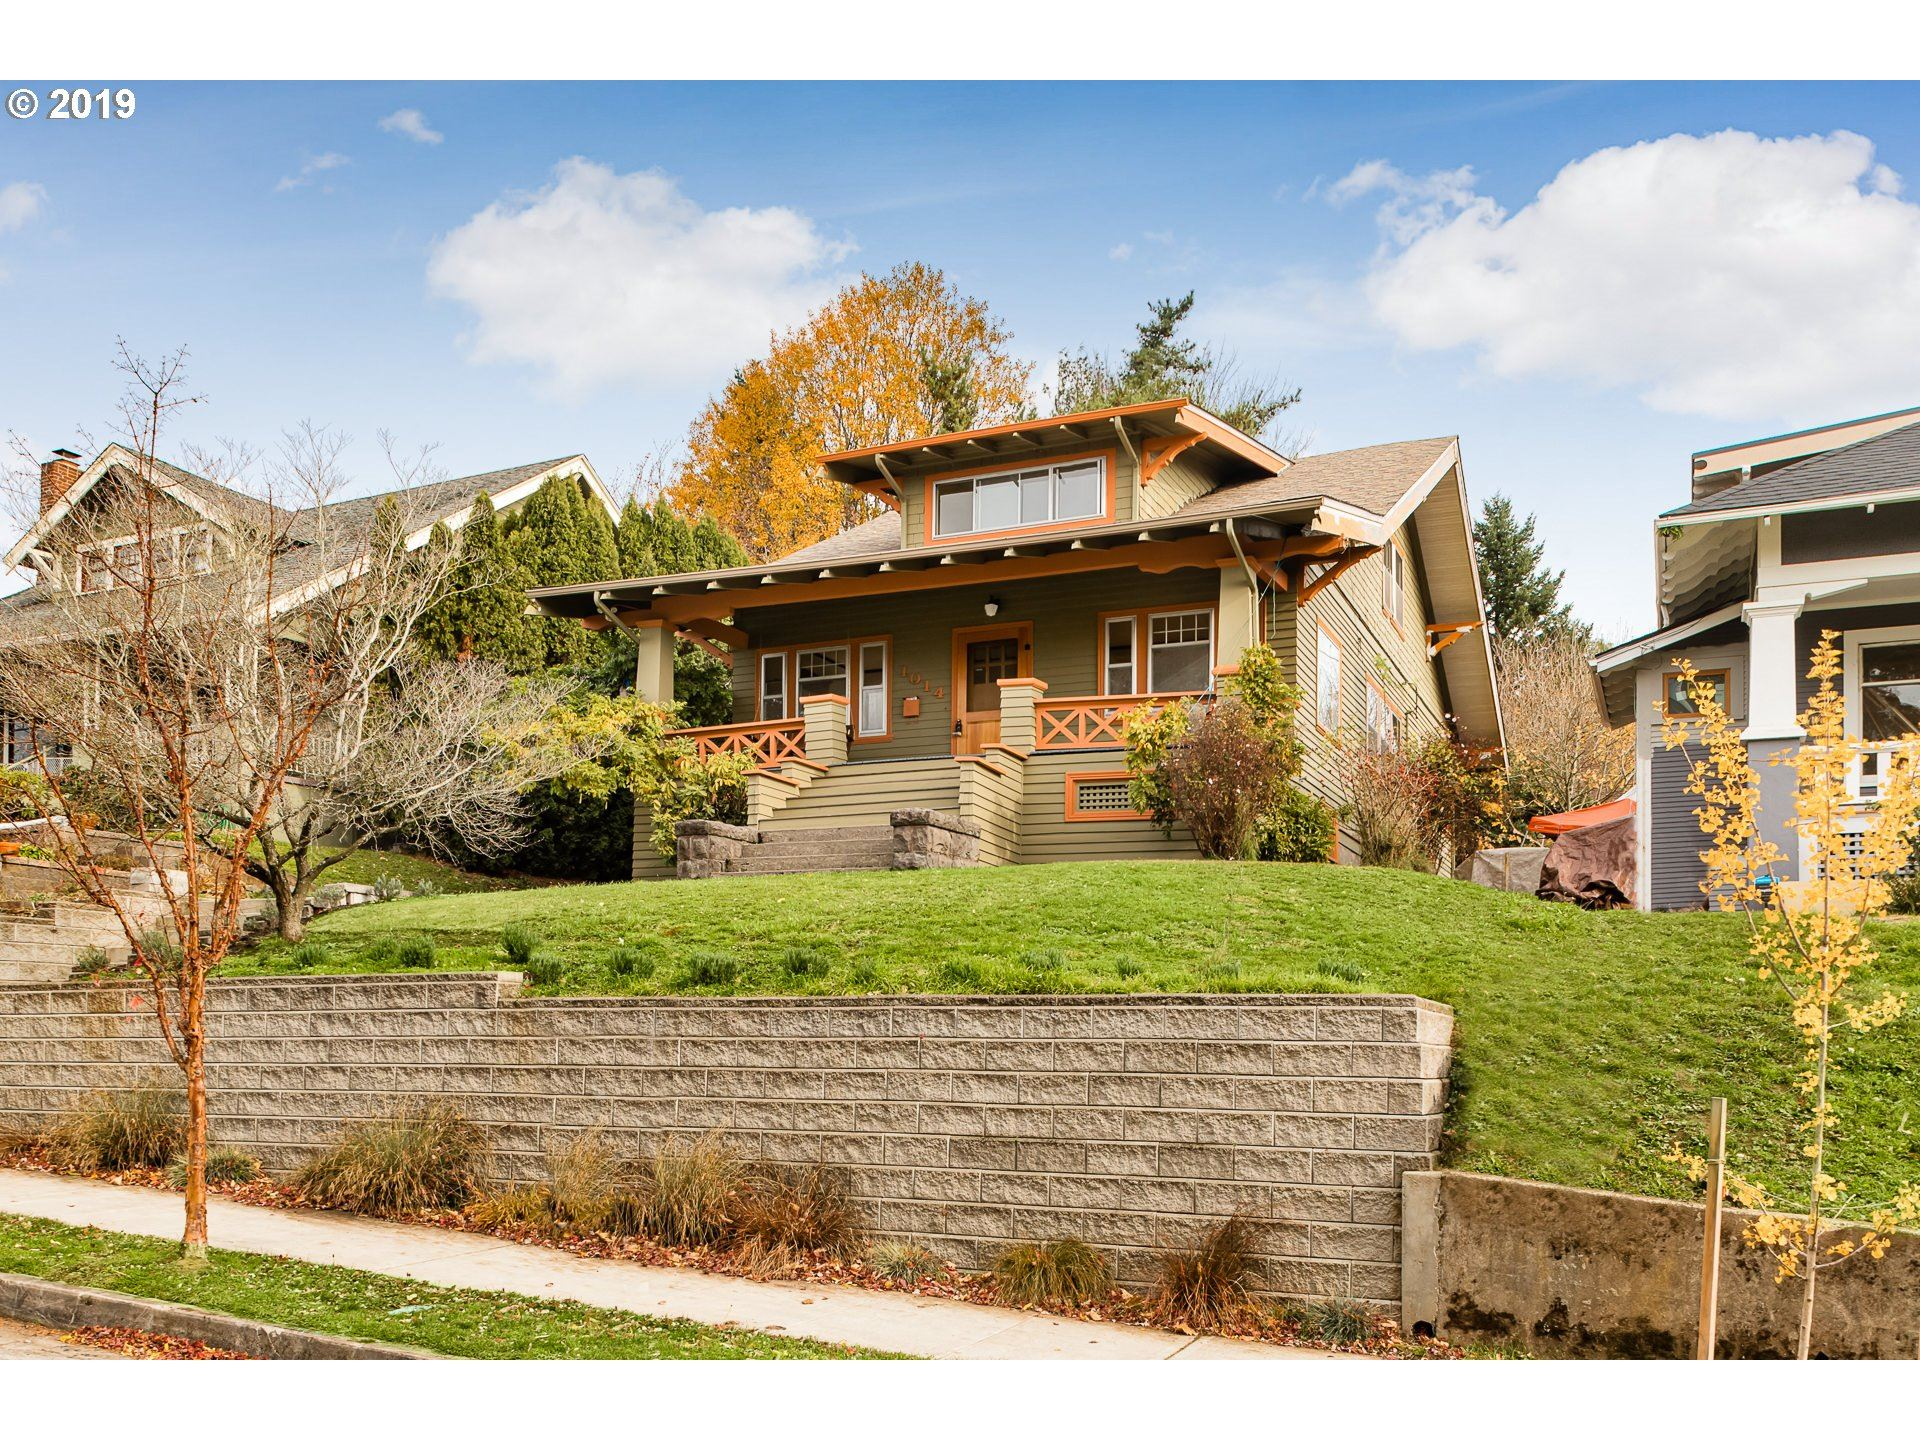 1014 SE 50TH AVE, Portland, OR 97215 - MLS#: 20143854